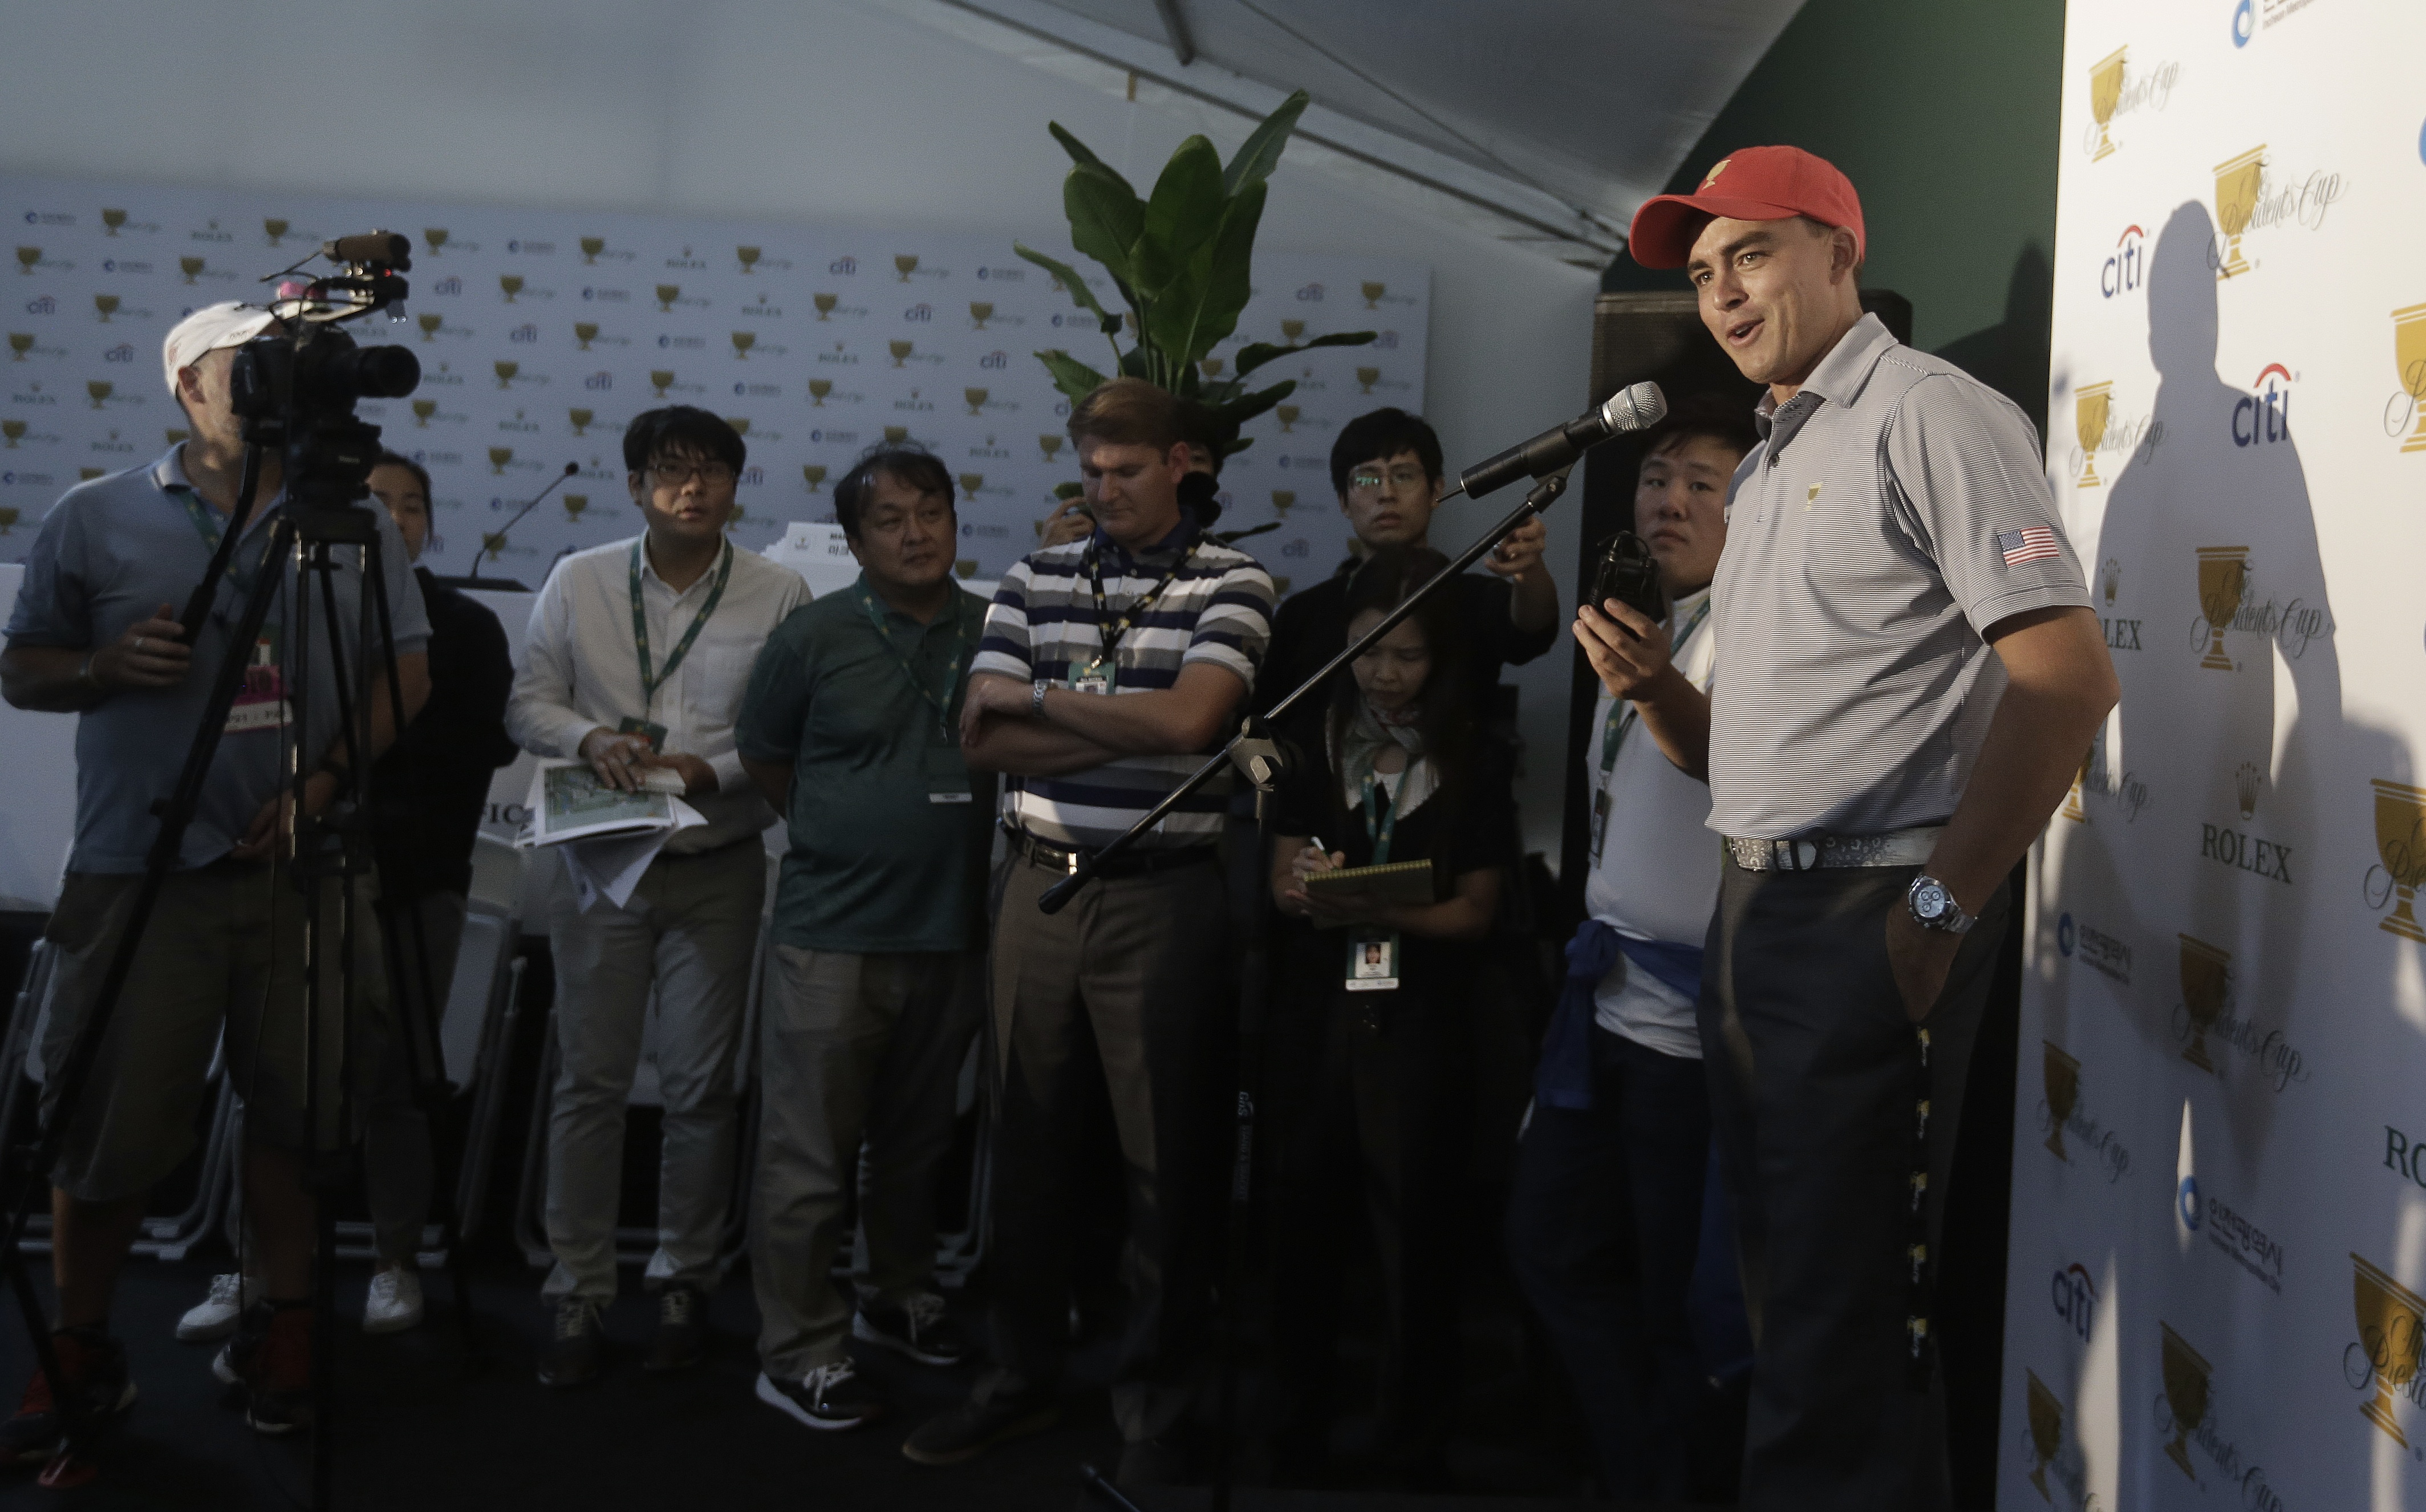 United States team player Rickie Fowler speaks during a news conference ahead of the Presidents Cup golf tournament at Jack Nicklaus Golf Club Korea in Incheon, South Korea, Tuesday, Oct. 6, 2015. (AP Photo/Ahn